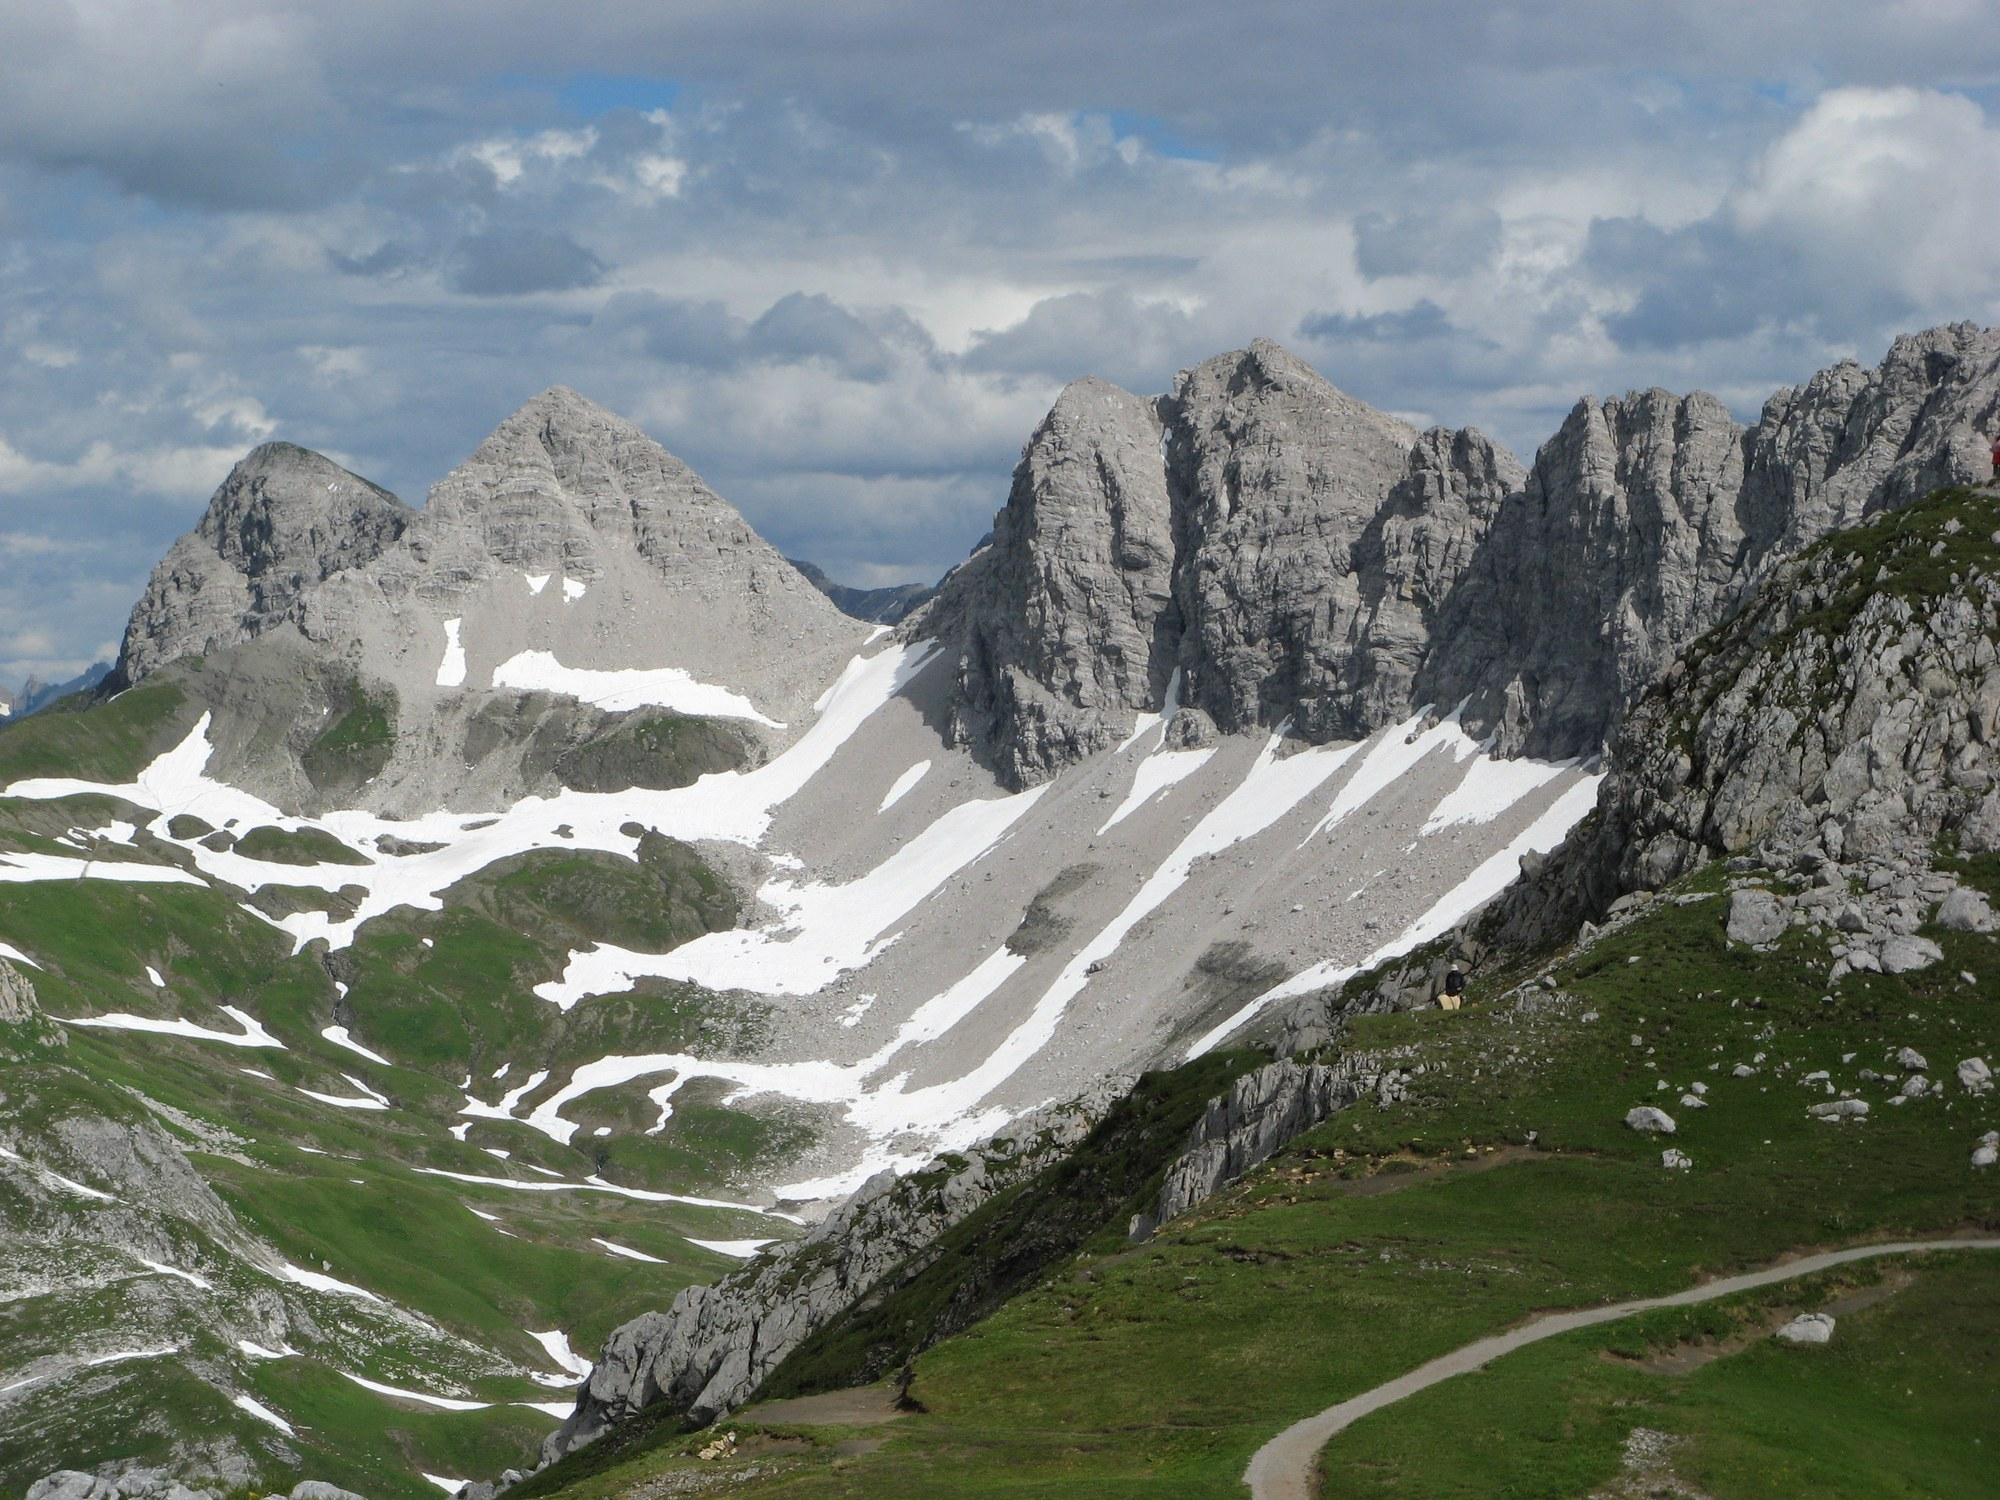 Arete Kirkland Parking Global Adventure Hike The Alps Of Western Austria The Mountaineers